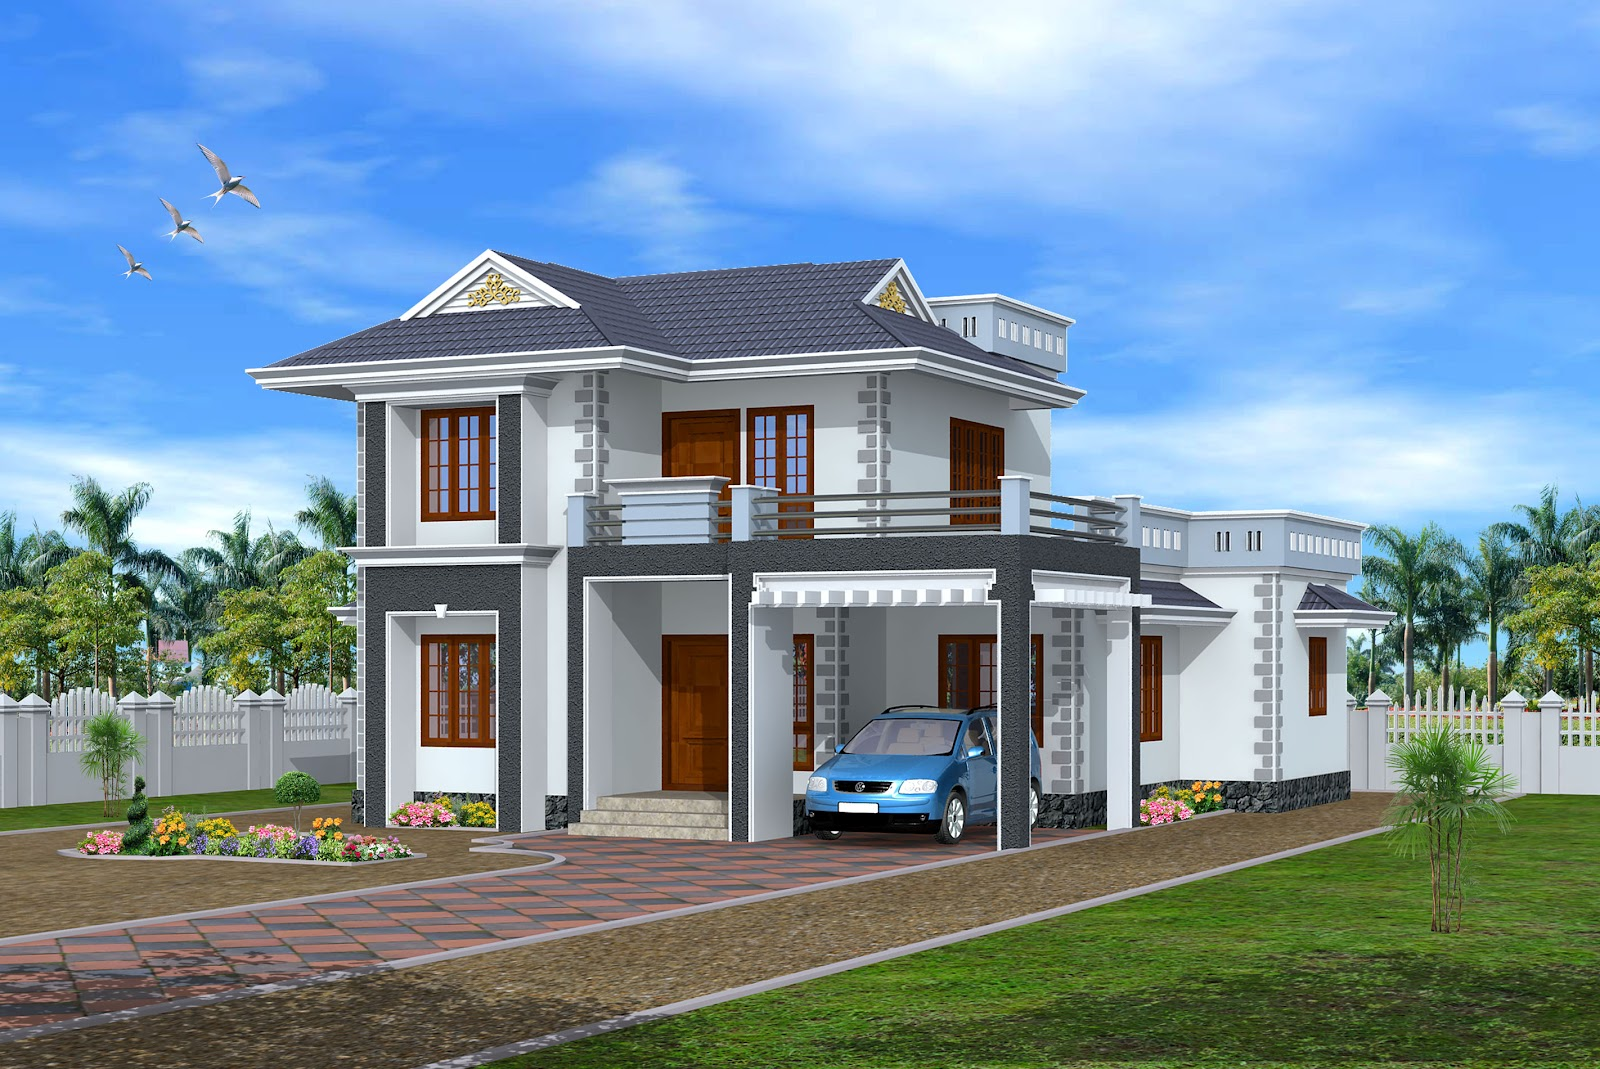 New home designs latest modern homes exterior designs views for Good home design ideas